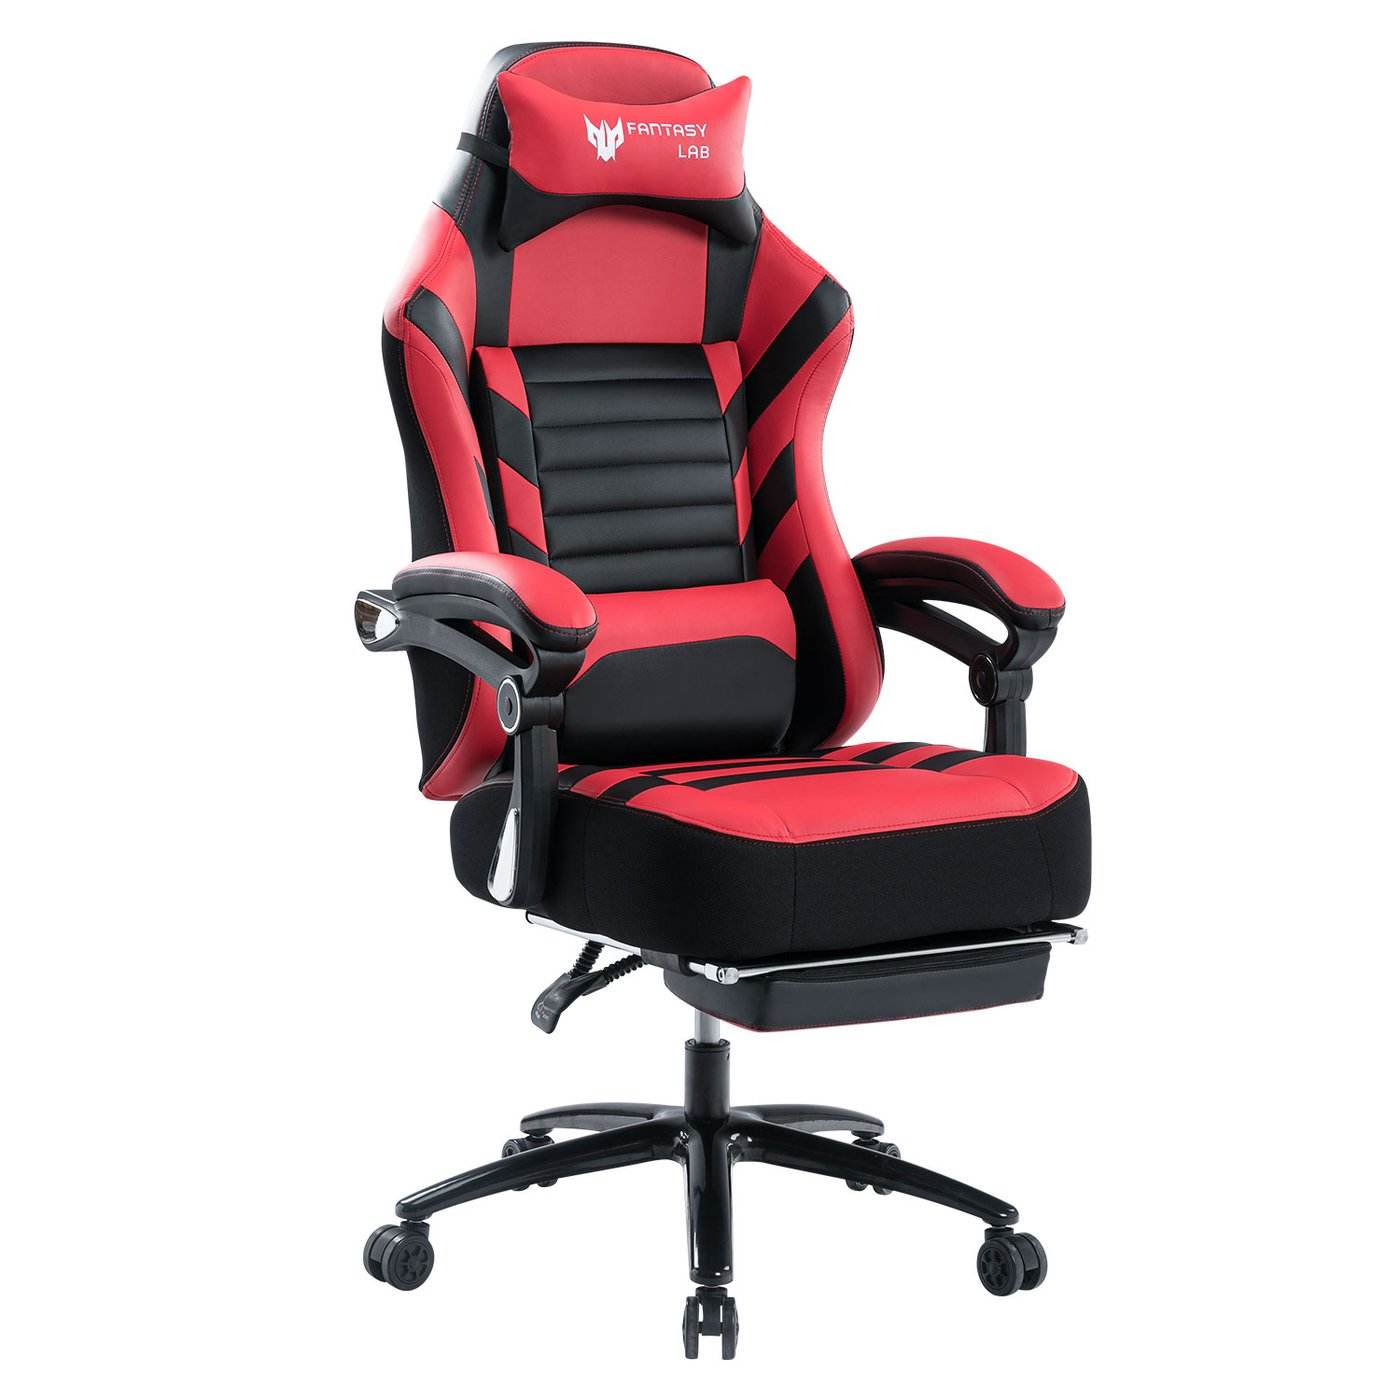 8257 Killabee High Back Comfortable Computer Gamer Racing Gaming Chair PC Room